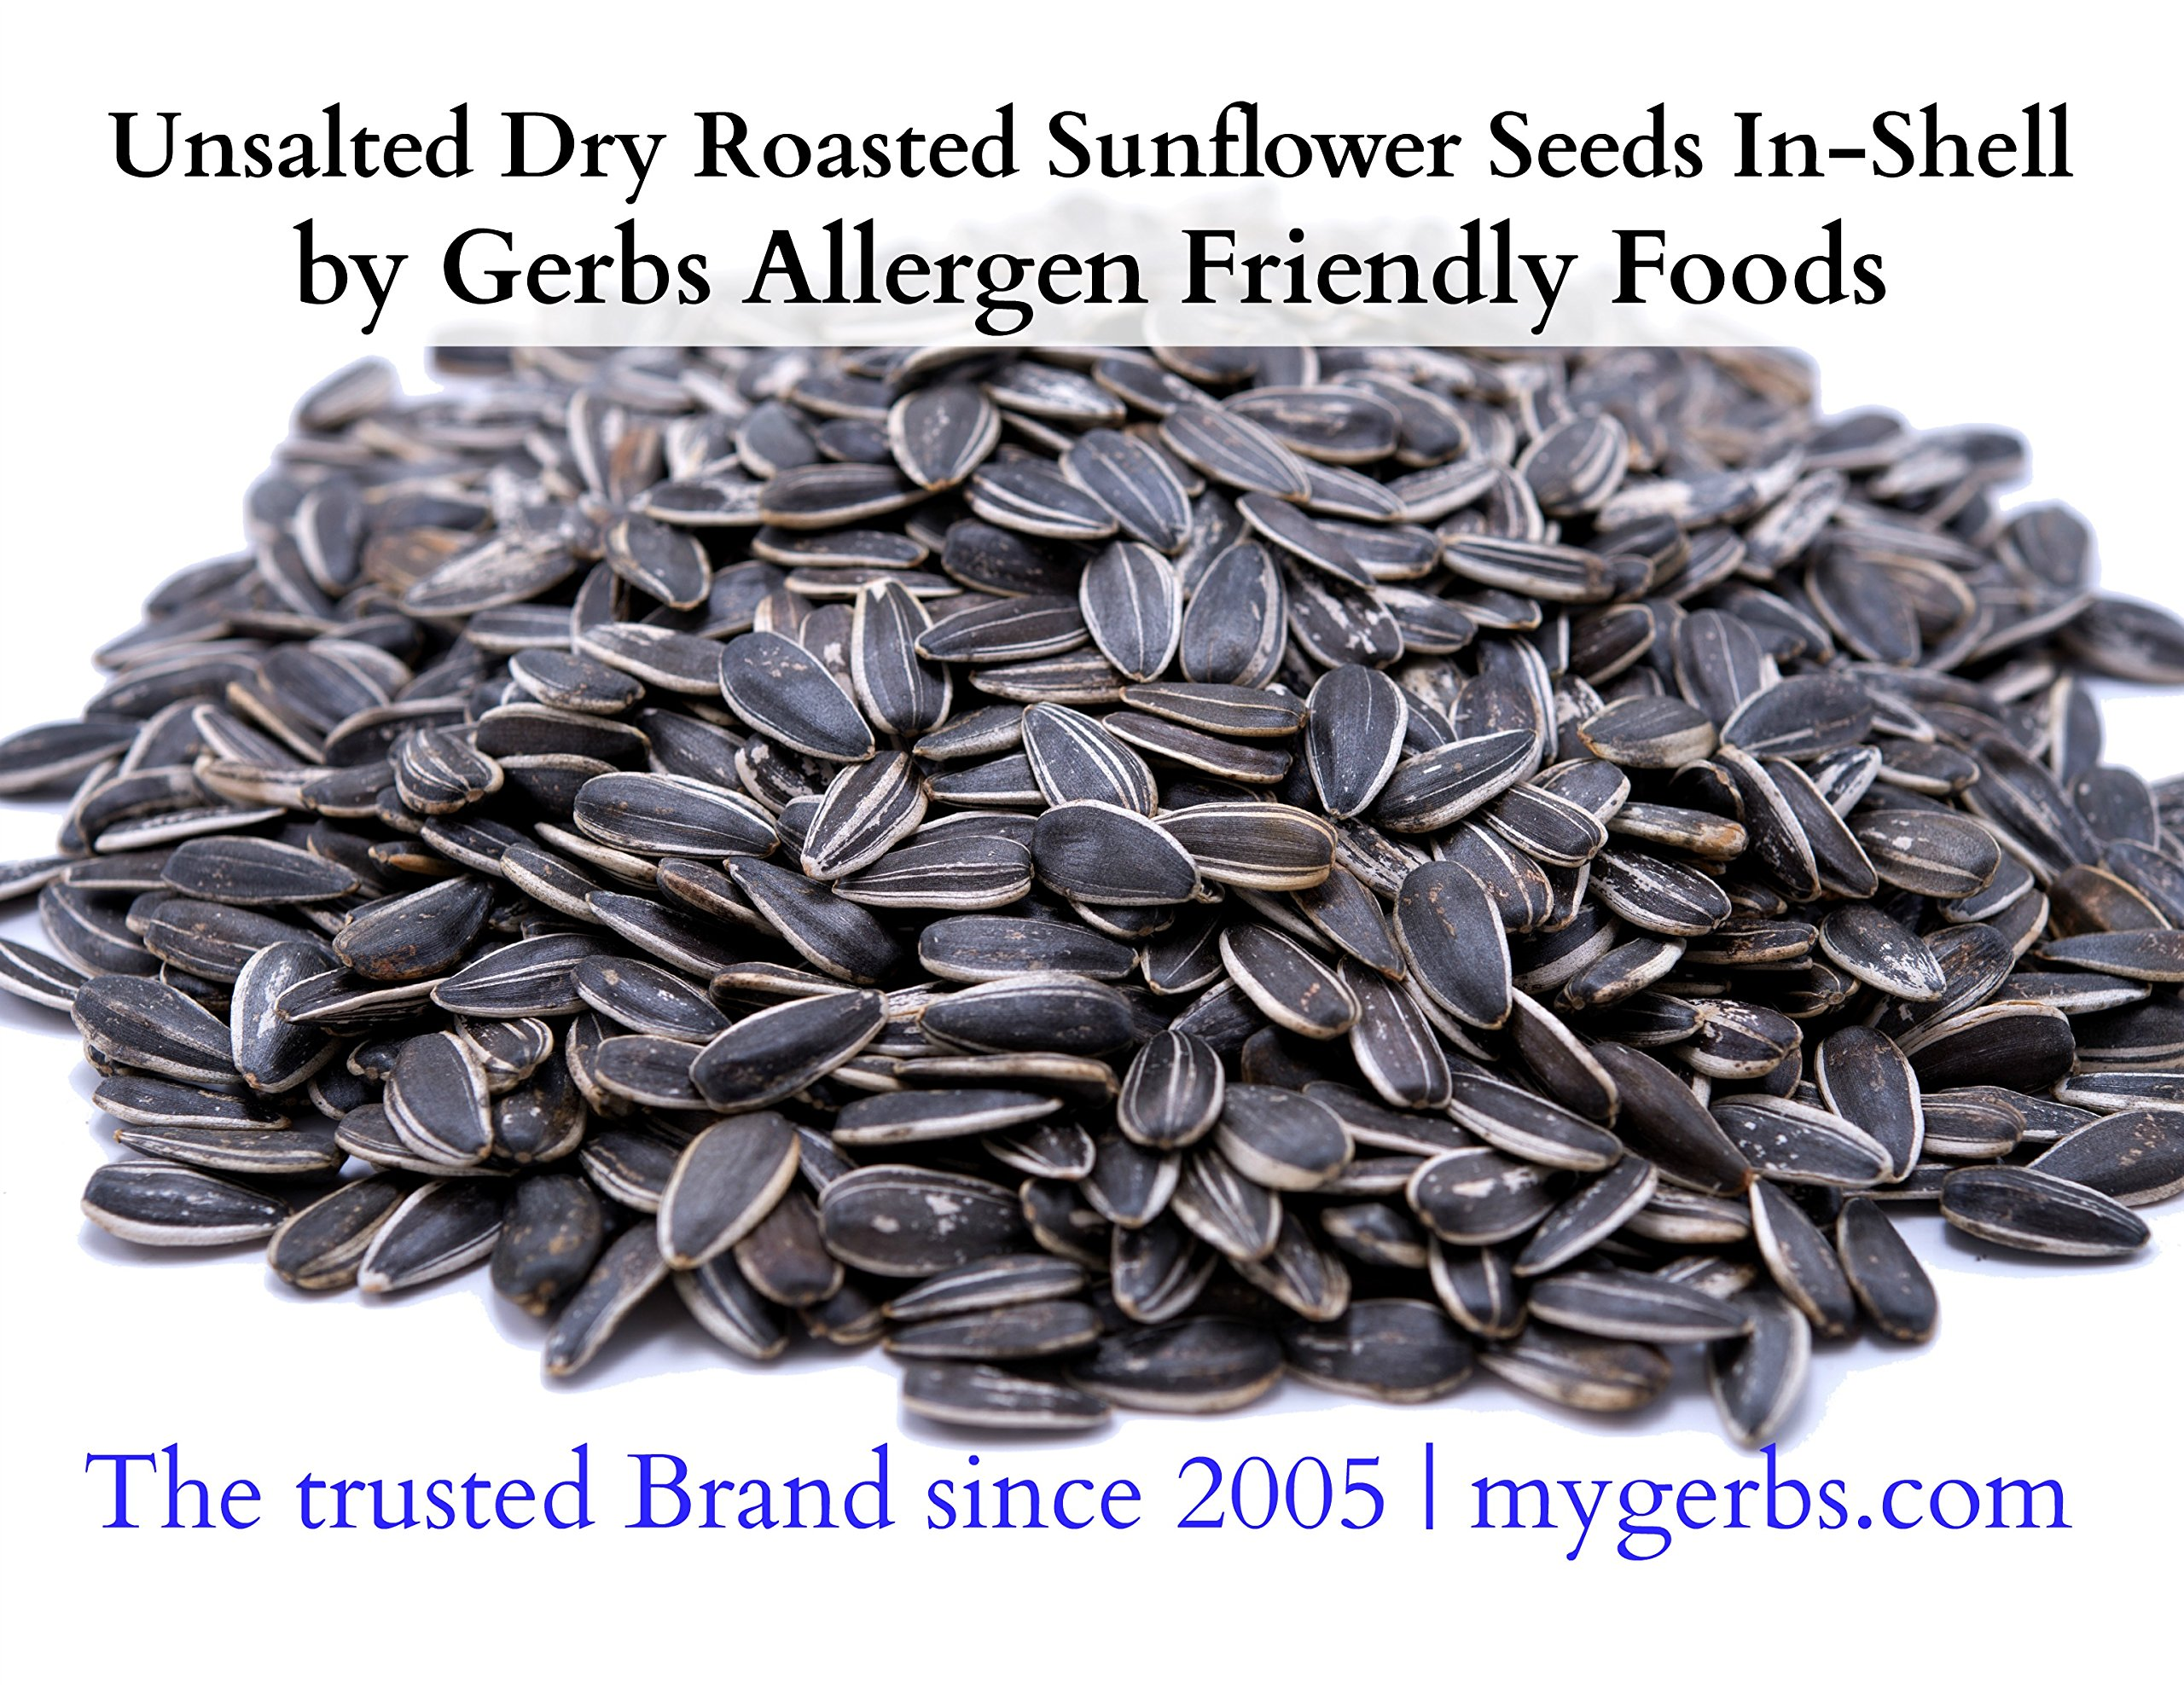 GERBS Unsalted Whole Sunflower Seeds by 4 LBS - Top 12 Food Allergy Free & NON GMO - Vegan & Kosher - In-Shell Dry Roasted Seeds Grown in USA by GERBS (Image #2)